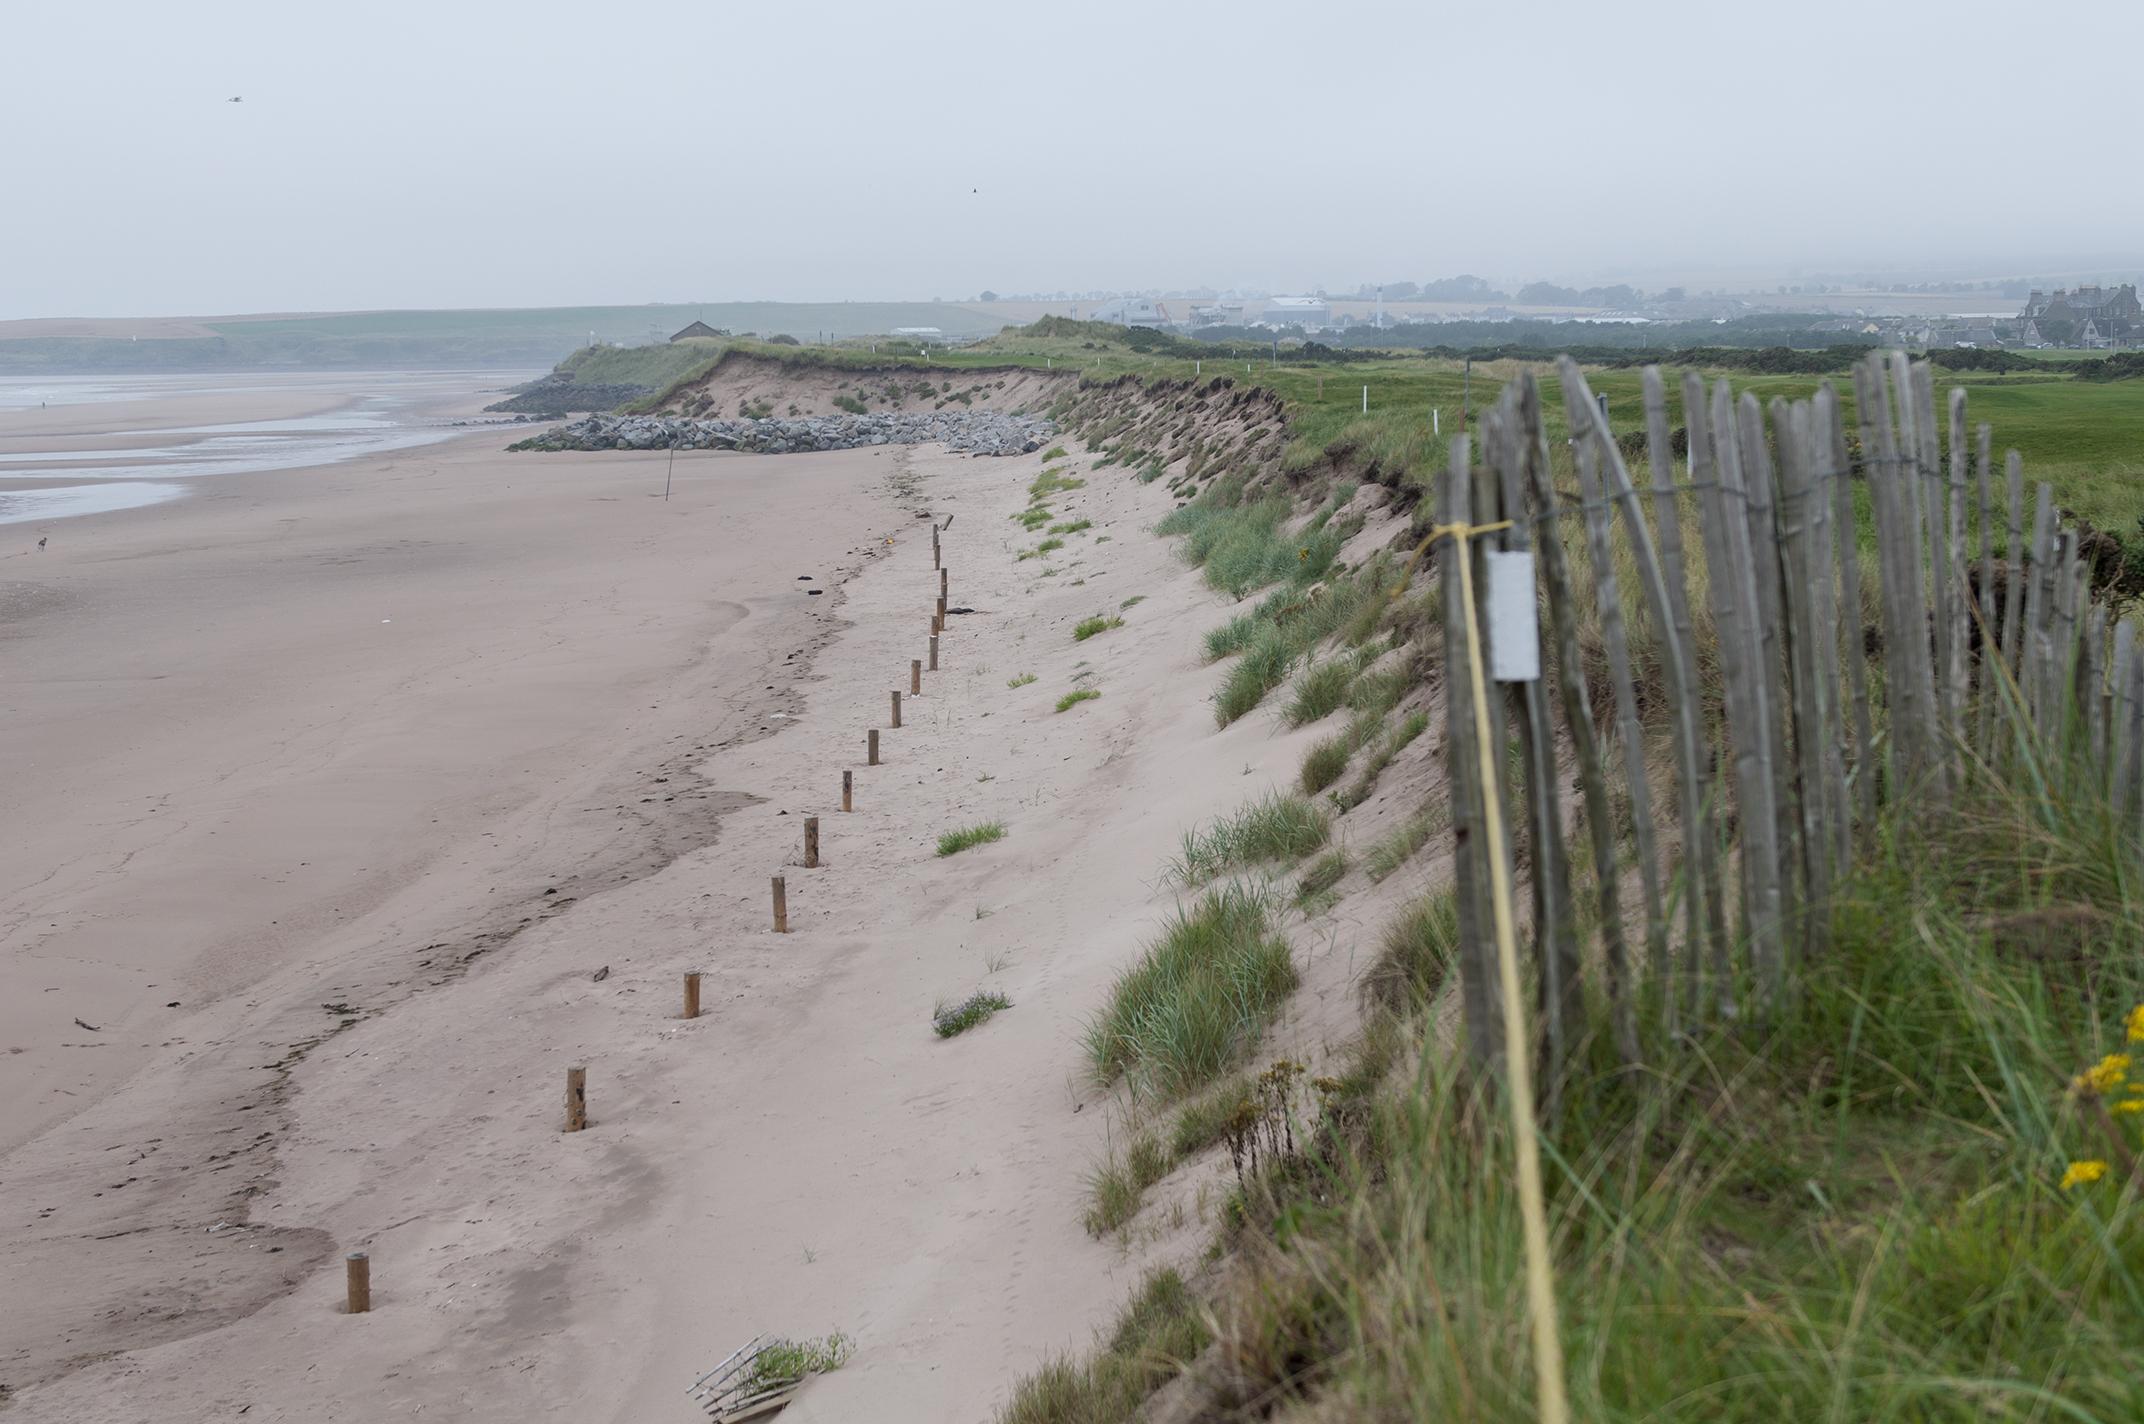 The erosion crisis at Montrose was first identified 20 years ago